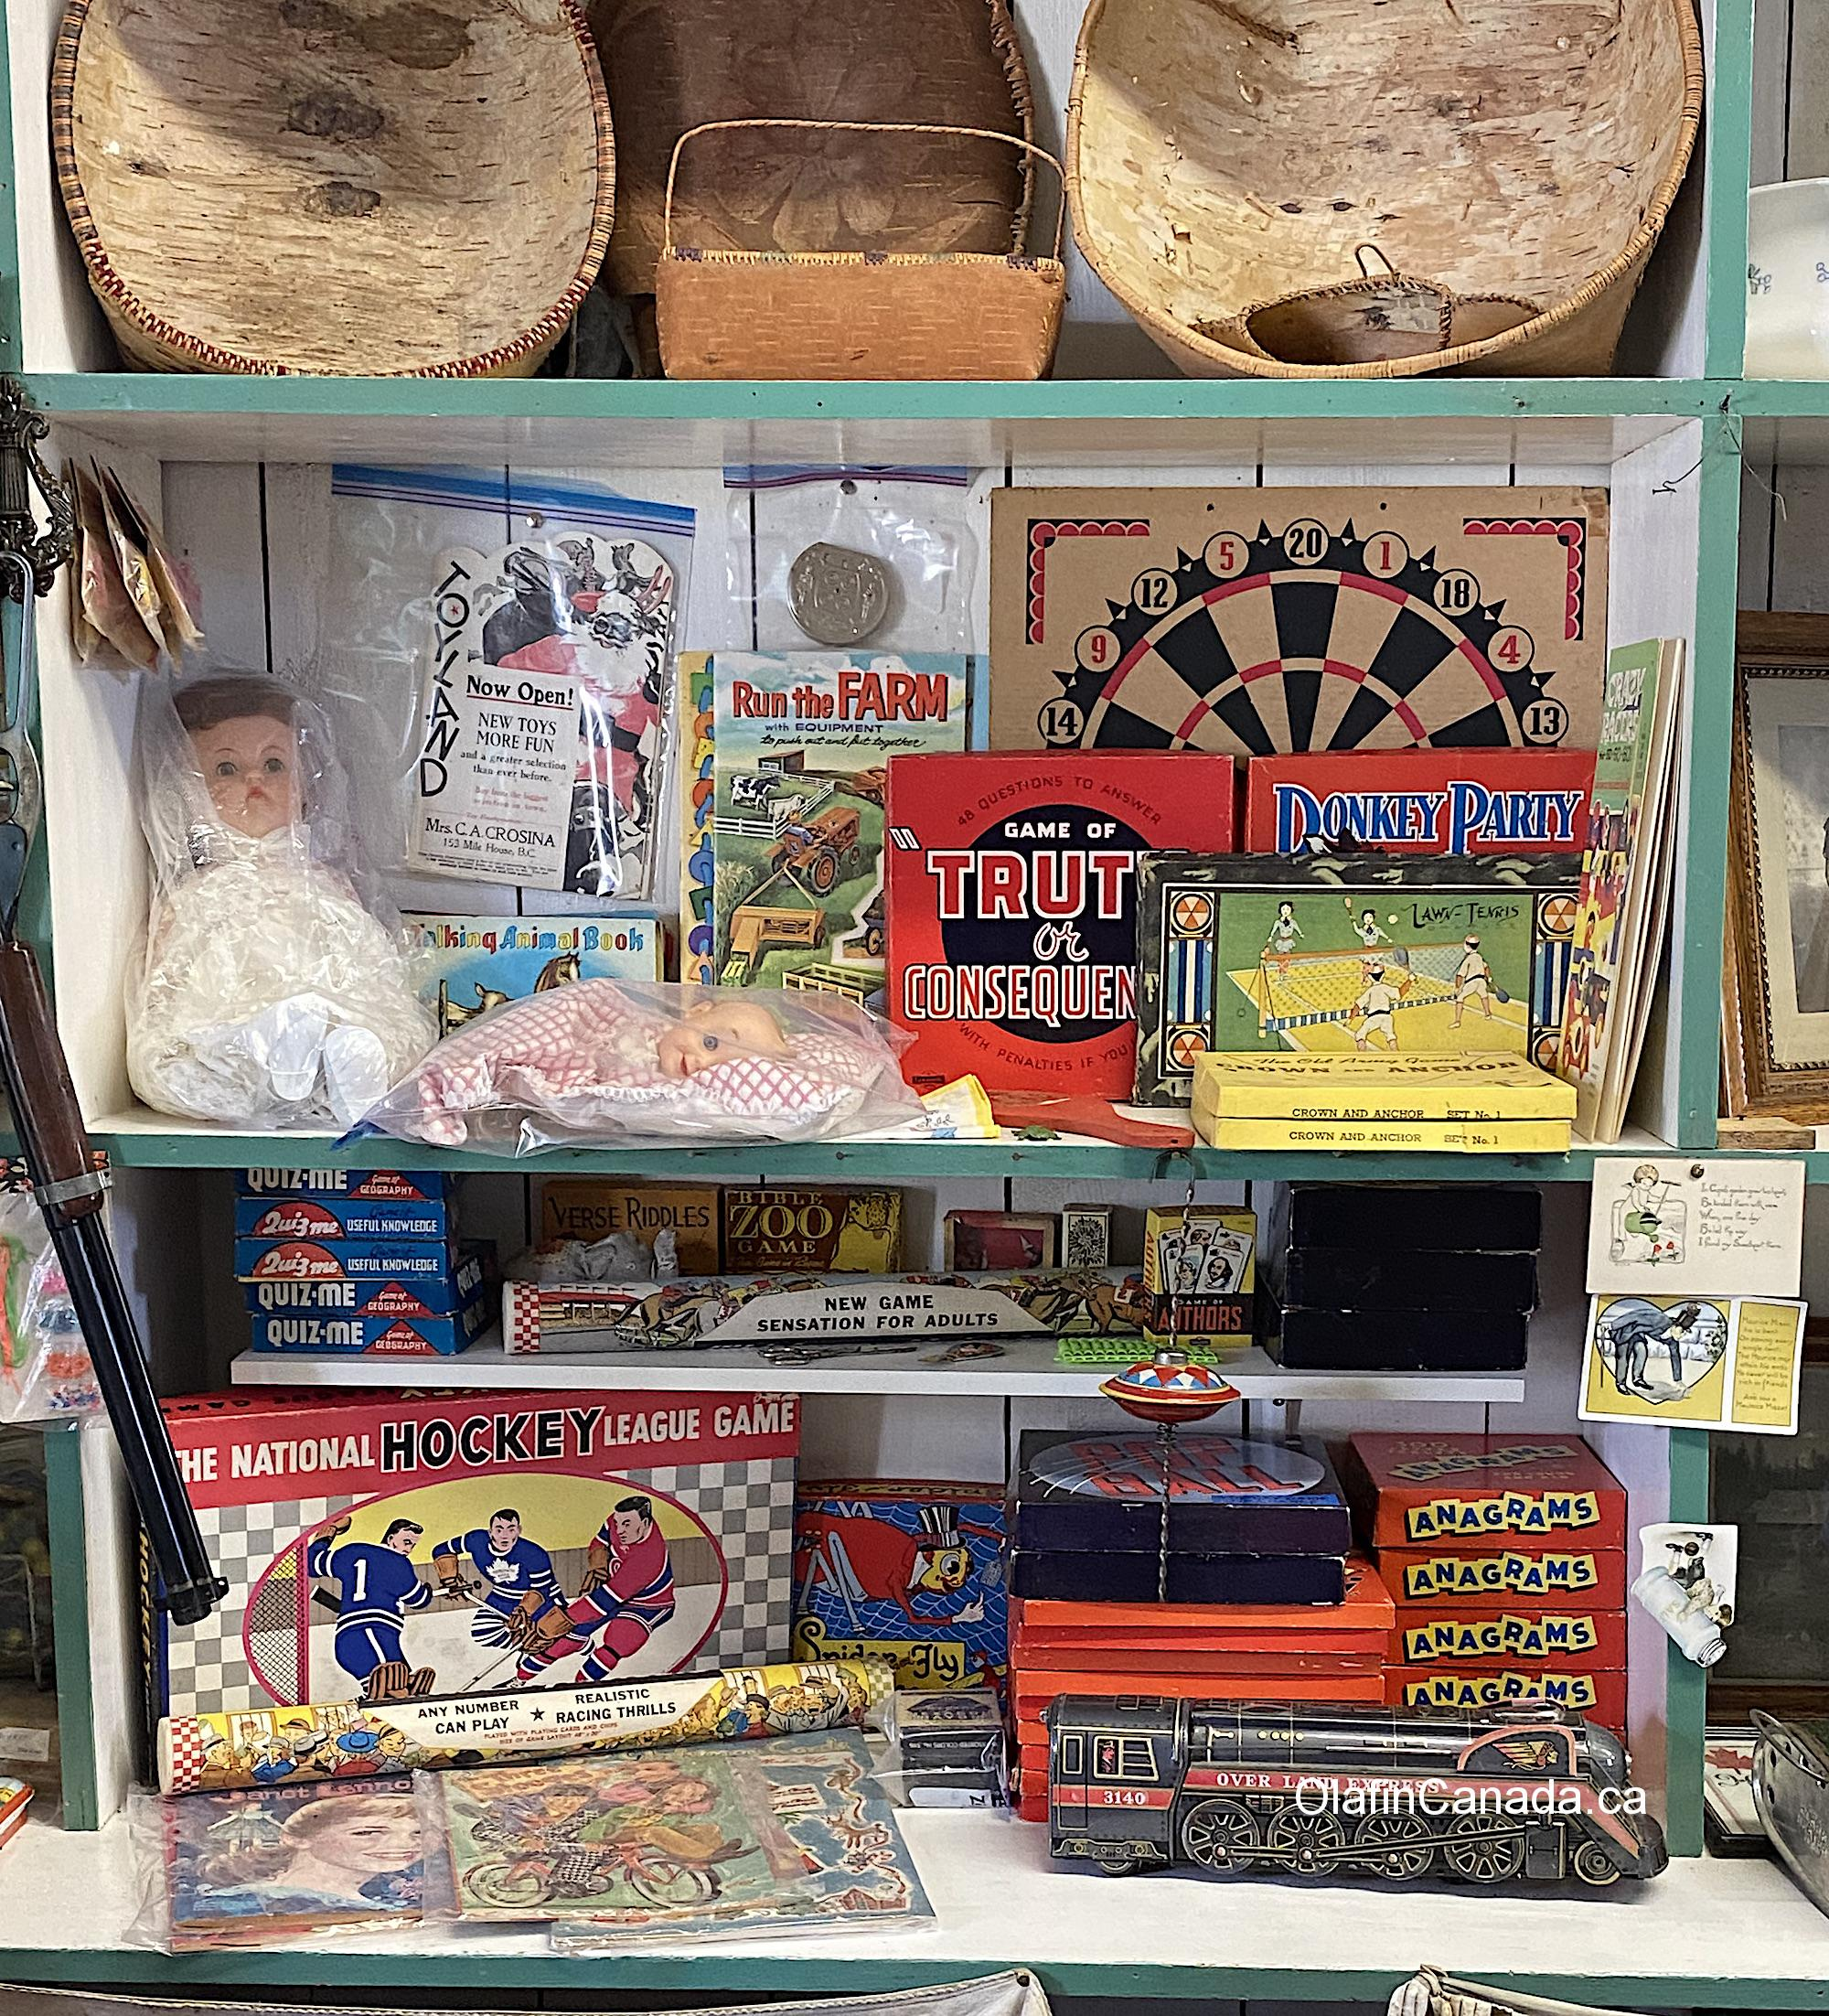 Old games and toys at the General Store in 153 Mile House #olafincanada #britishcolumbia #discoverbc #abandonedbc #153milehouse #generalstore #backintime